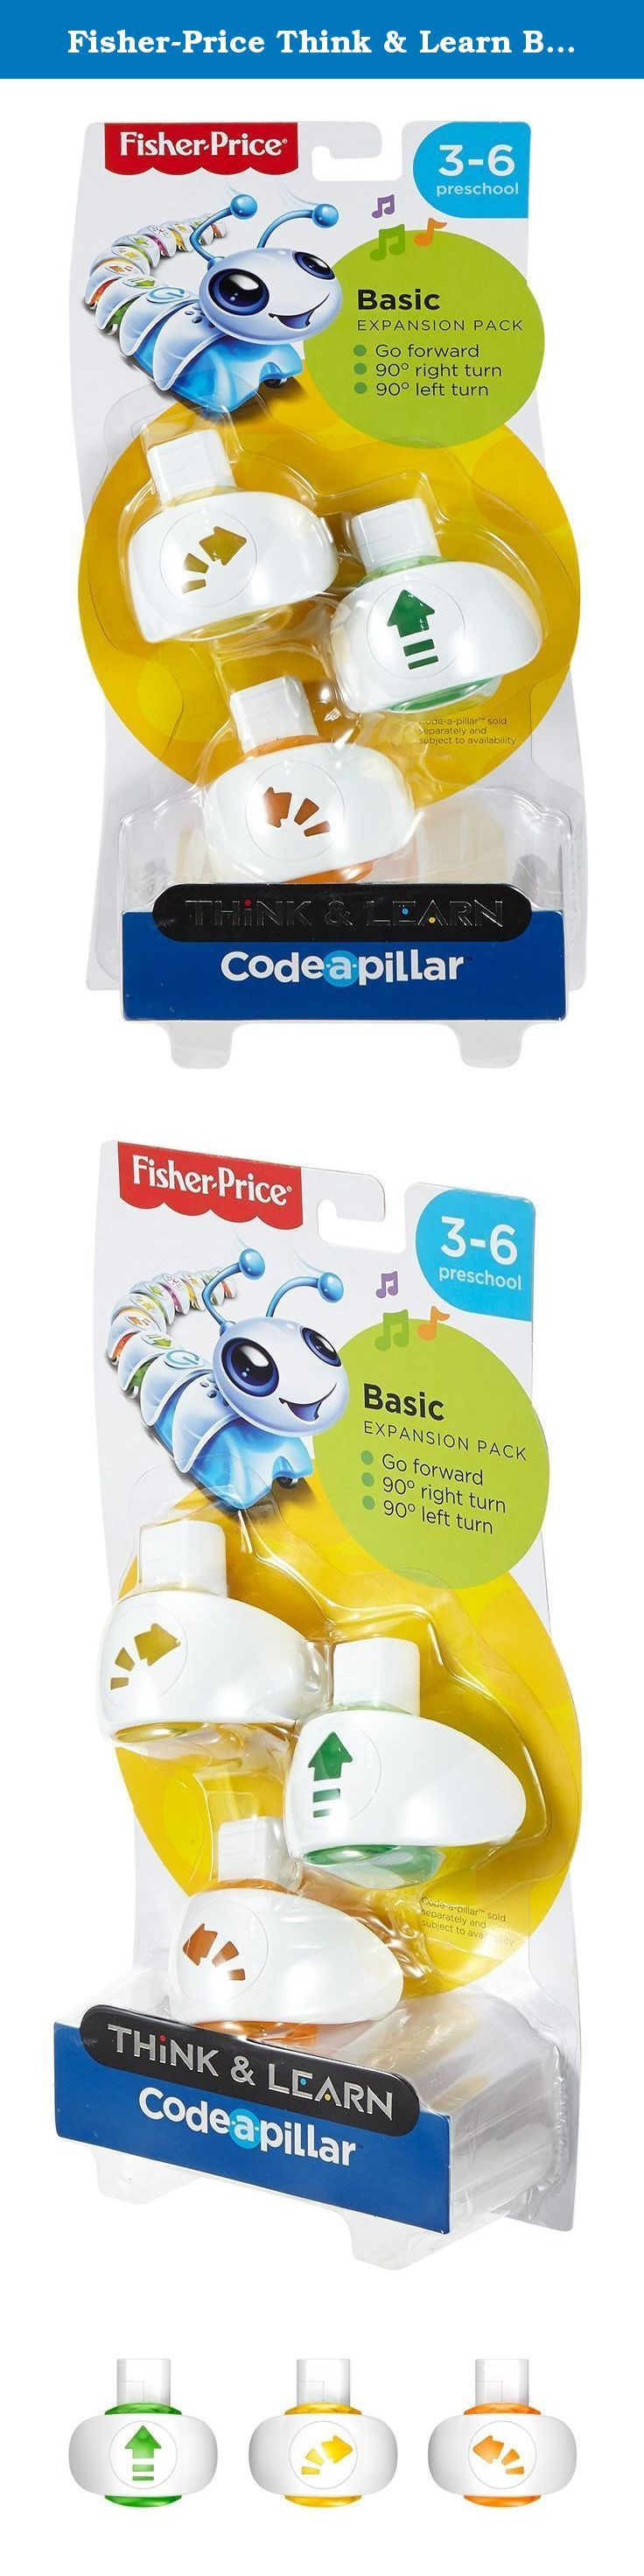 Fisher-Price Think & Learn Basic Expansion Pack. Code-a-pillar inspires little learners to be big thinkers! Preschoolers can develop important skills—like problem solving, planning & sequencing, and critical thinking—as they arrange (and rearrange!) these additional, easy-to-connect segments to send Code-a-pillar on all sorts of different paths. Add Go Forward, turn right 90 degrees, and turn left 90 degrees ... your wish is his command with this Code-a-pillar expansion pack!.